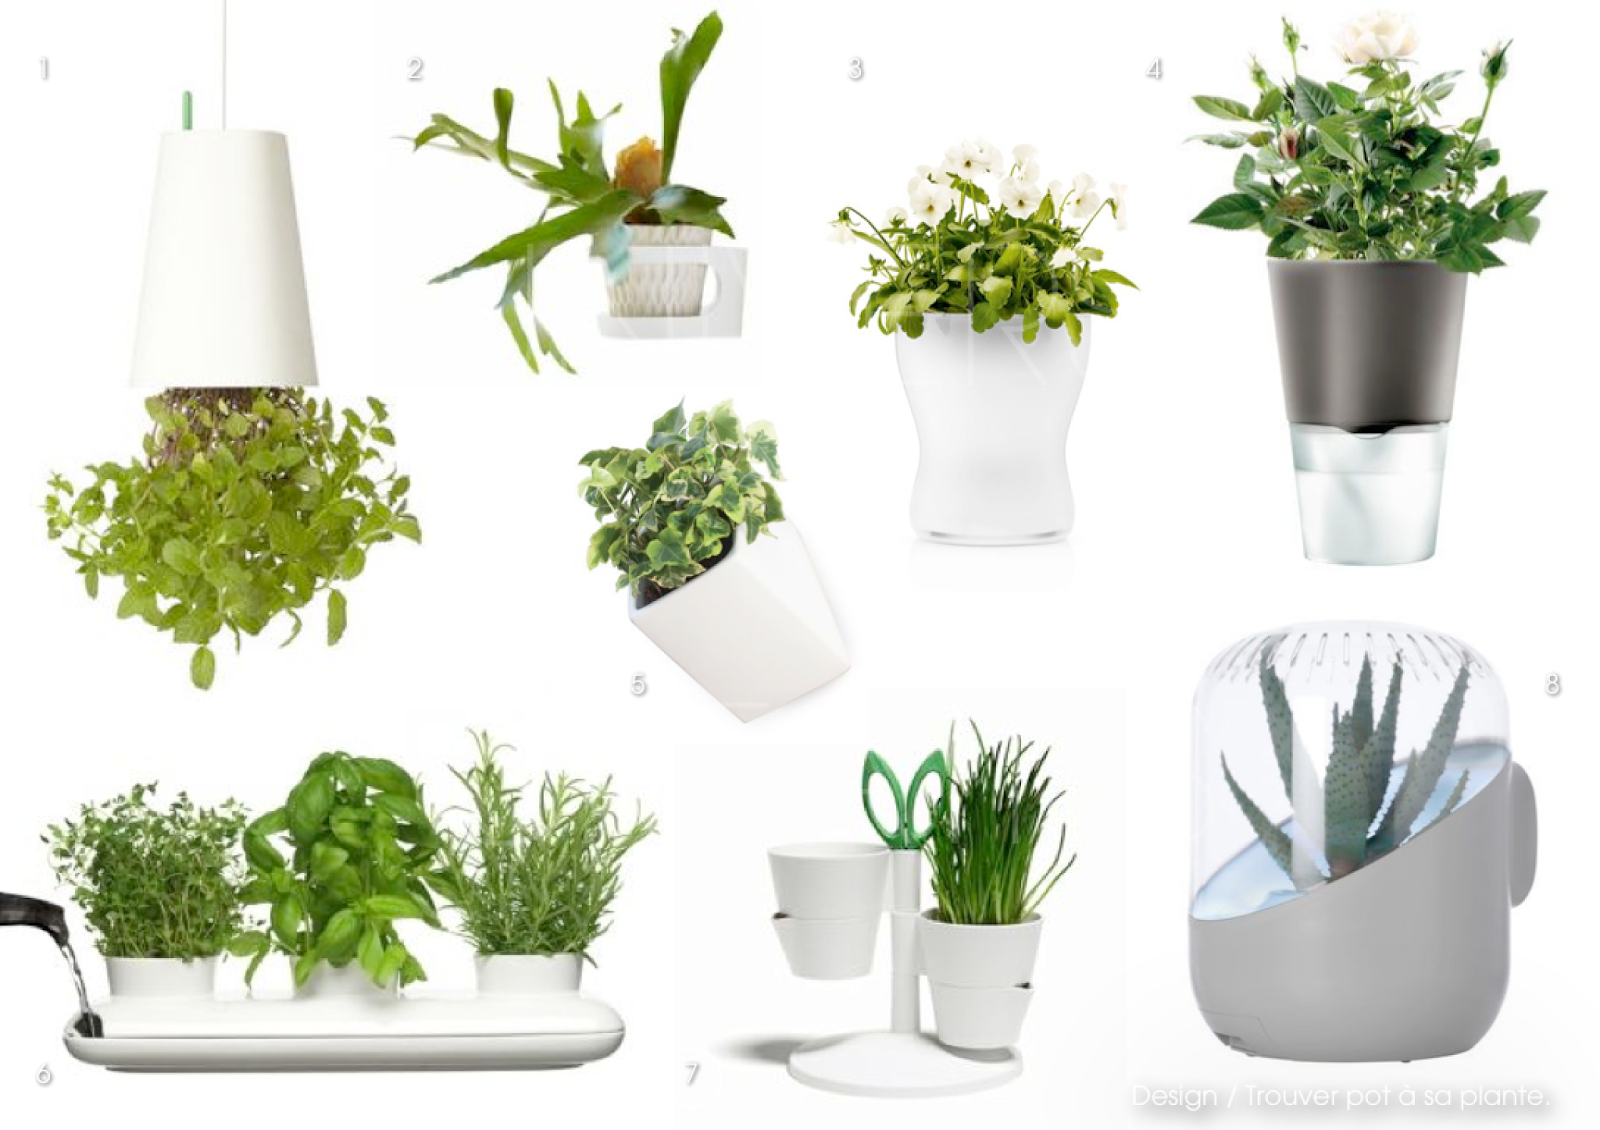 Univers creatifs design trouver pot sa plante - Plante interieur design ...